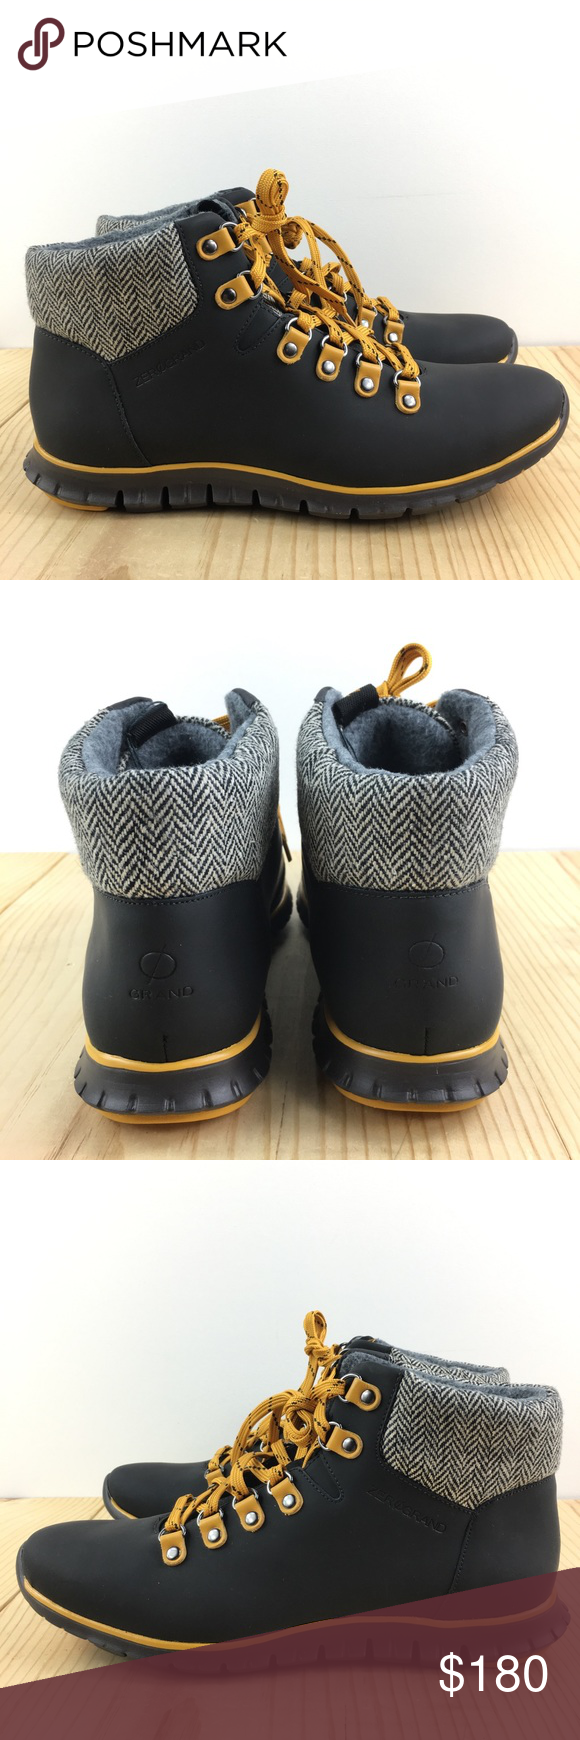 383a61f472b Cole Haan Zerogrand Hiker Boots Waterproof Size 10 NWT in 2018 | My ...